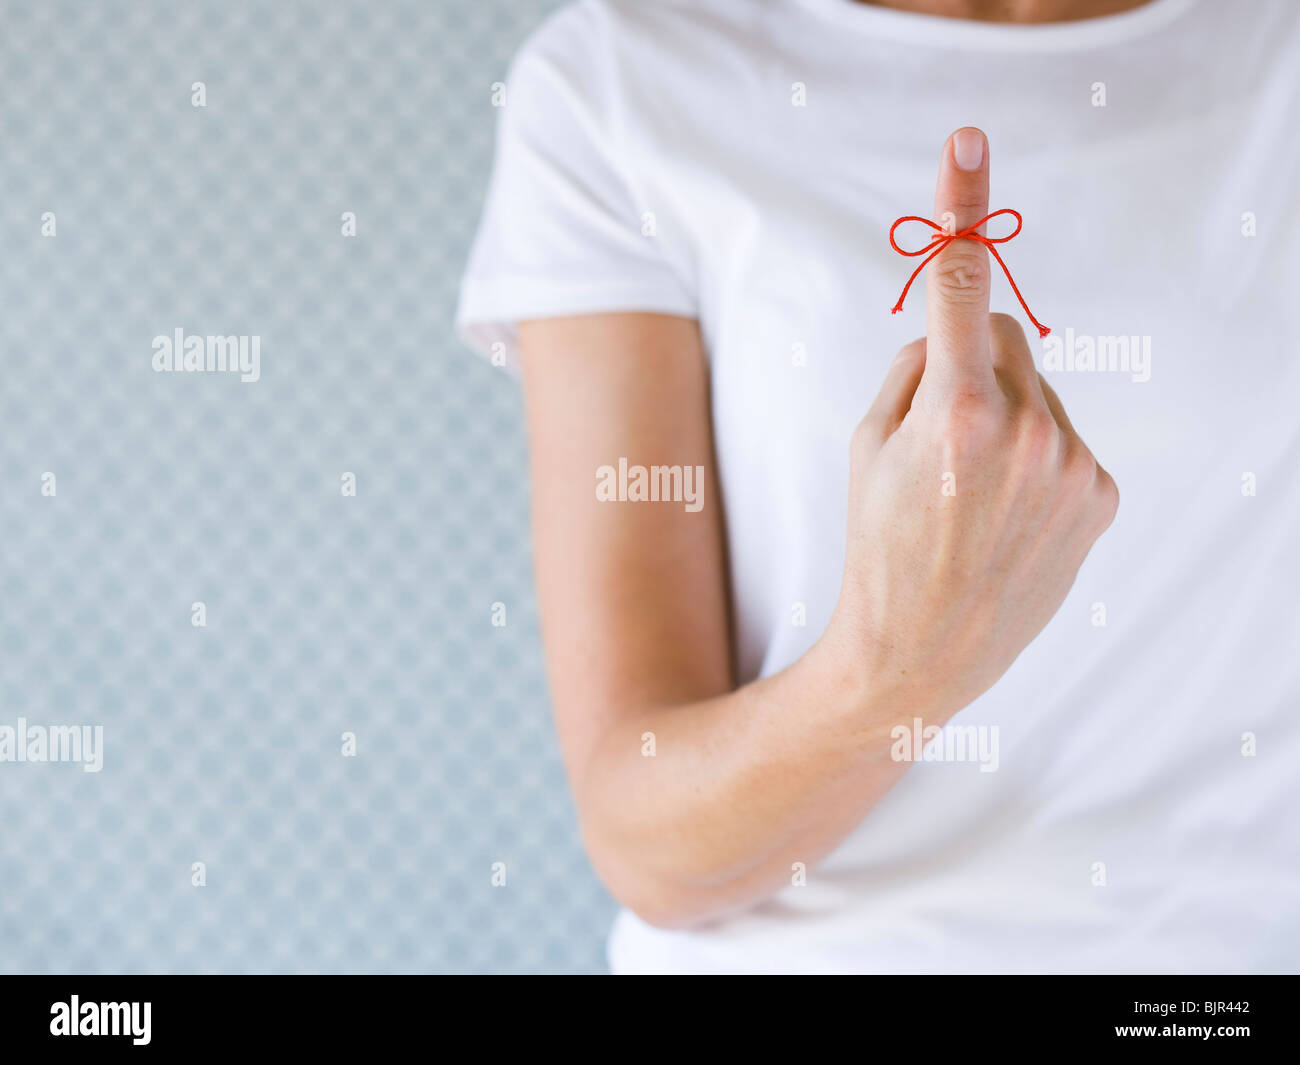 Woman with a red string tied on her finger. - Stock Image